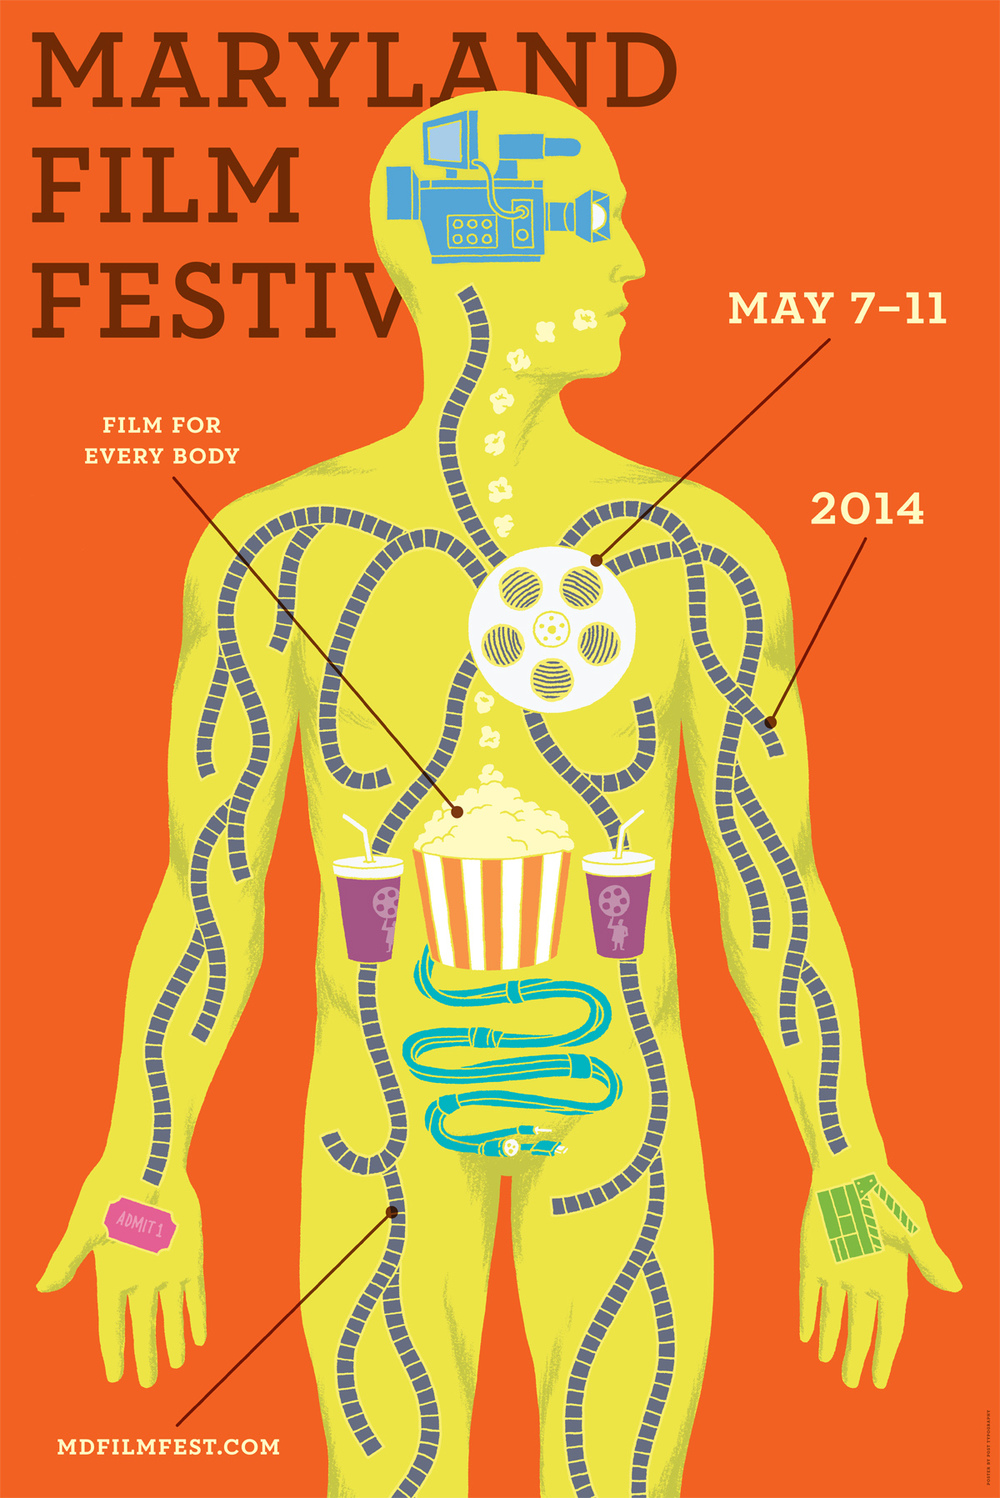 Maryland Film Festival 2014